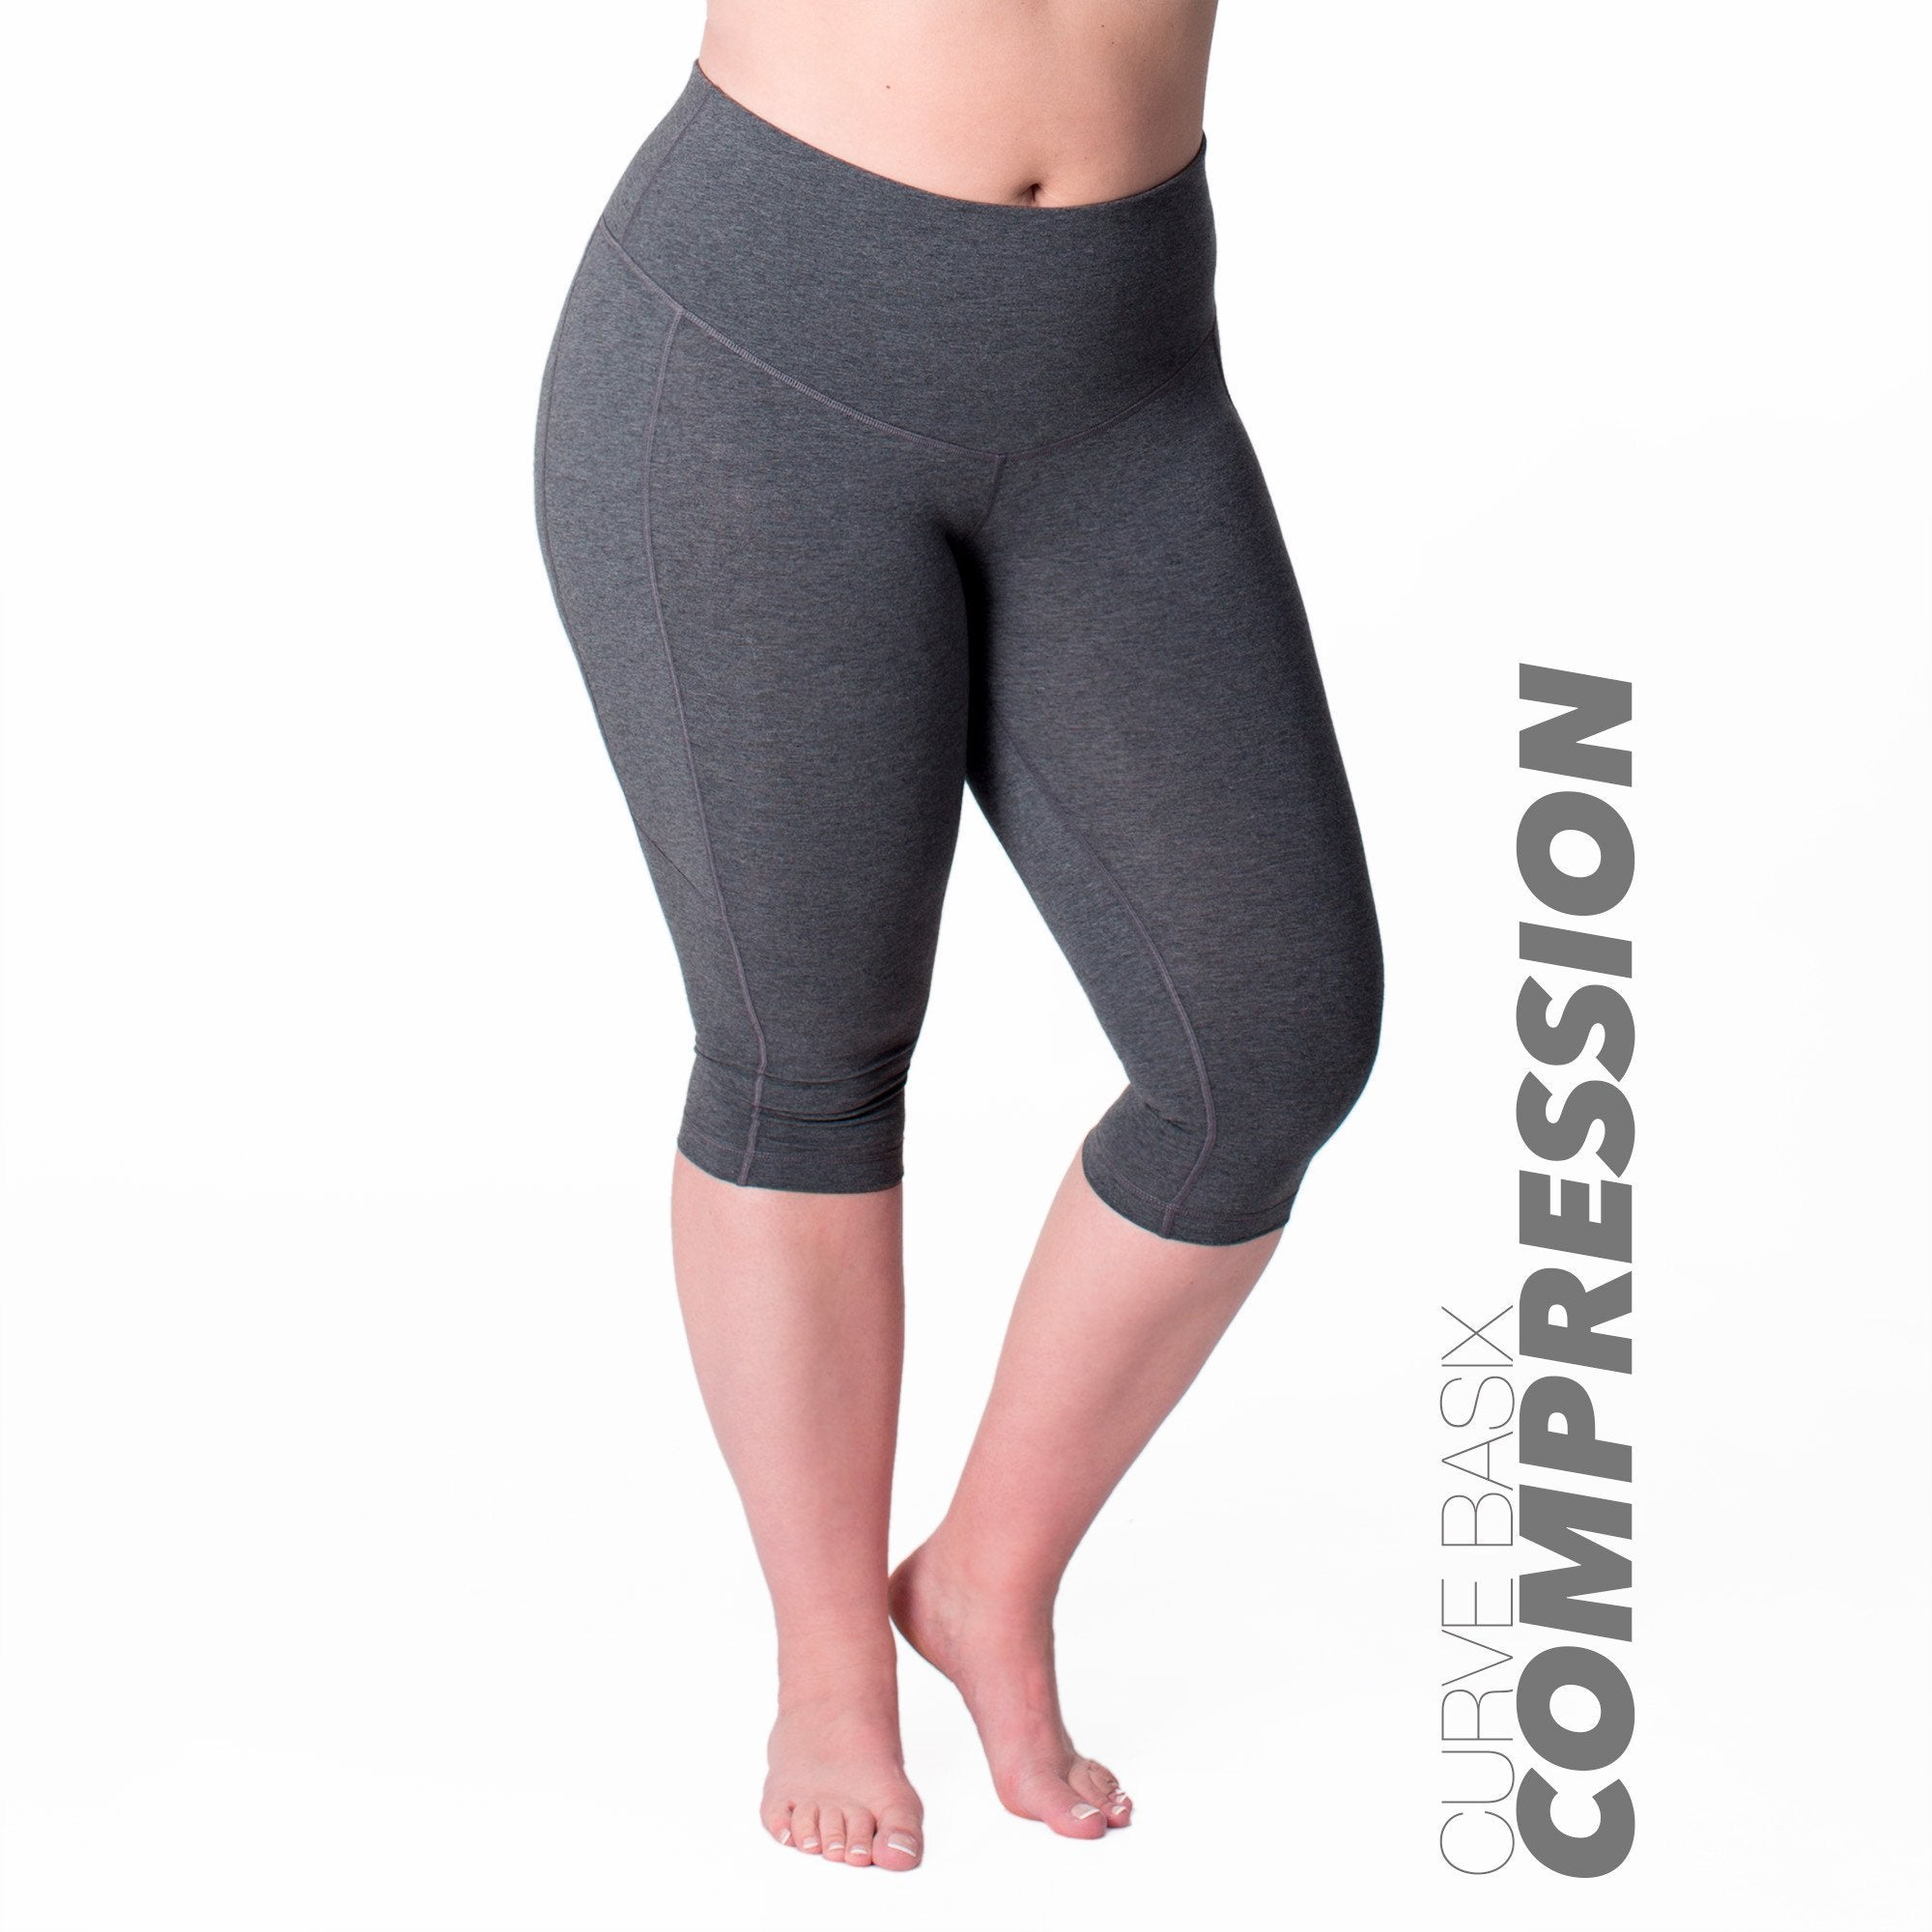 Curve Basix Compression Capri - Rainbeau Curves, 14/16 / Charcoal, activewear, athleisure, fitness, workout, gym, performance, womens, ladies, plus size, curvy, full figured, spandex, cotton, polyester - 1